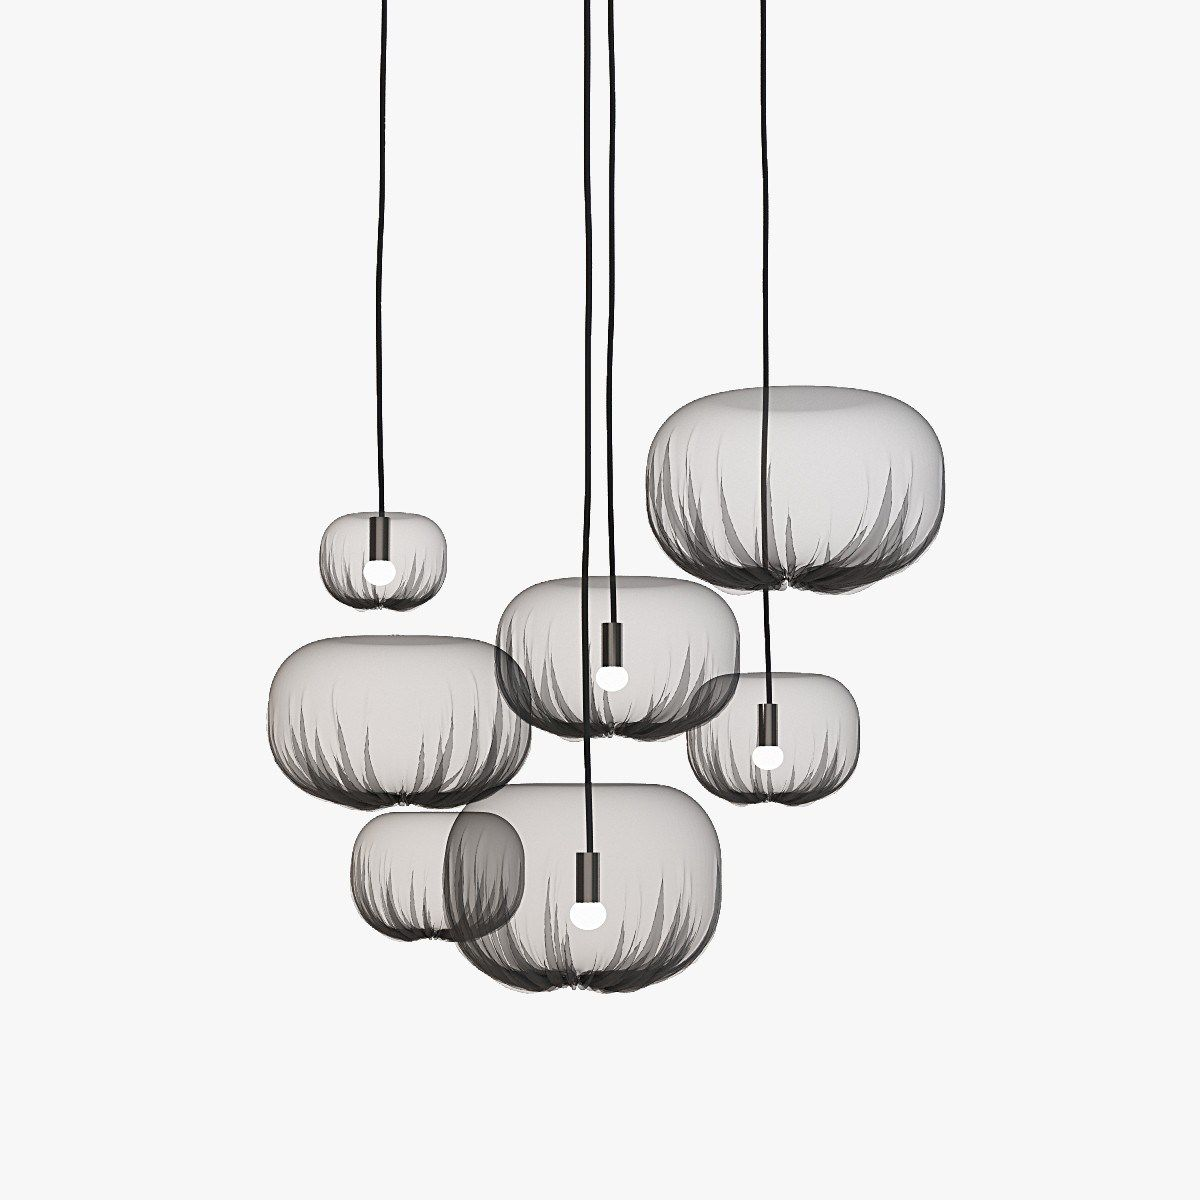 nendo_suspension_light 7cgi